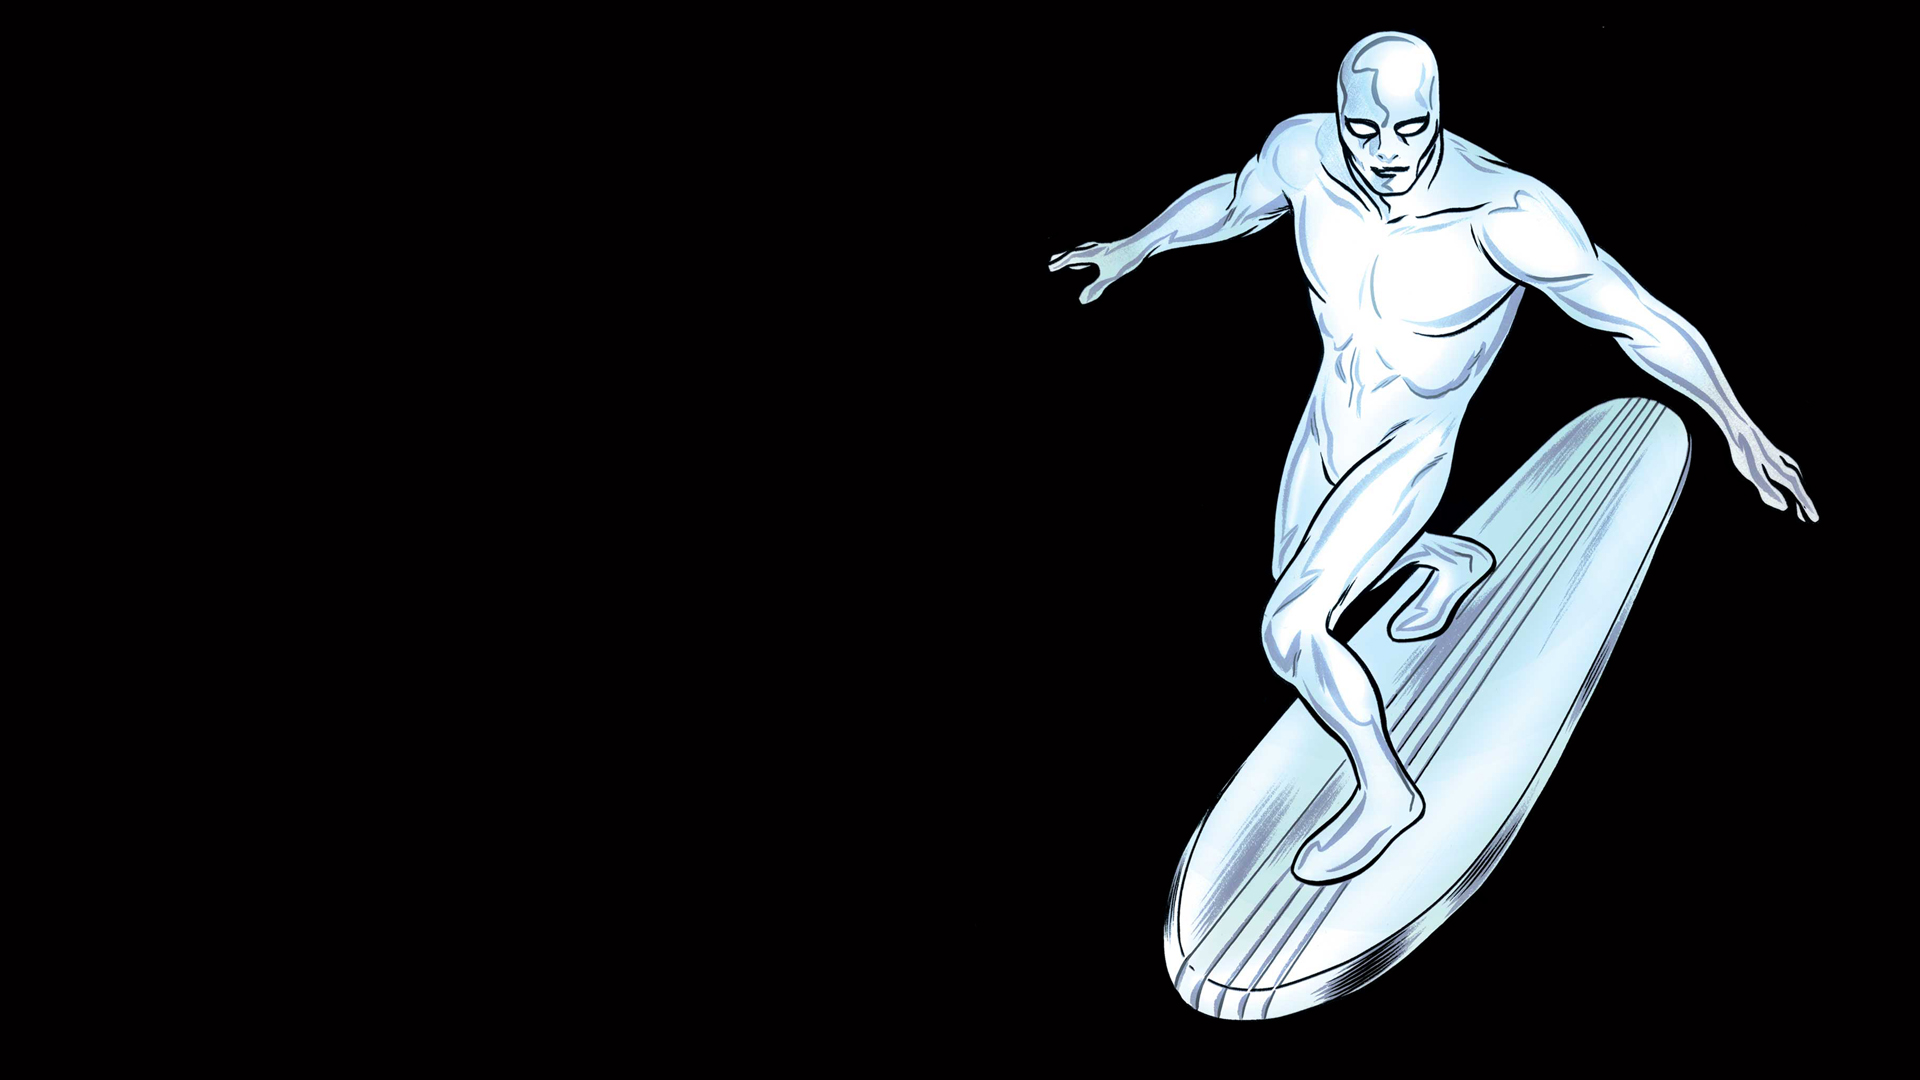 Silver Surfer Full HD Wallpaper And Background Image